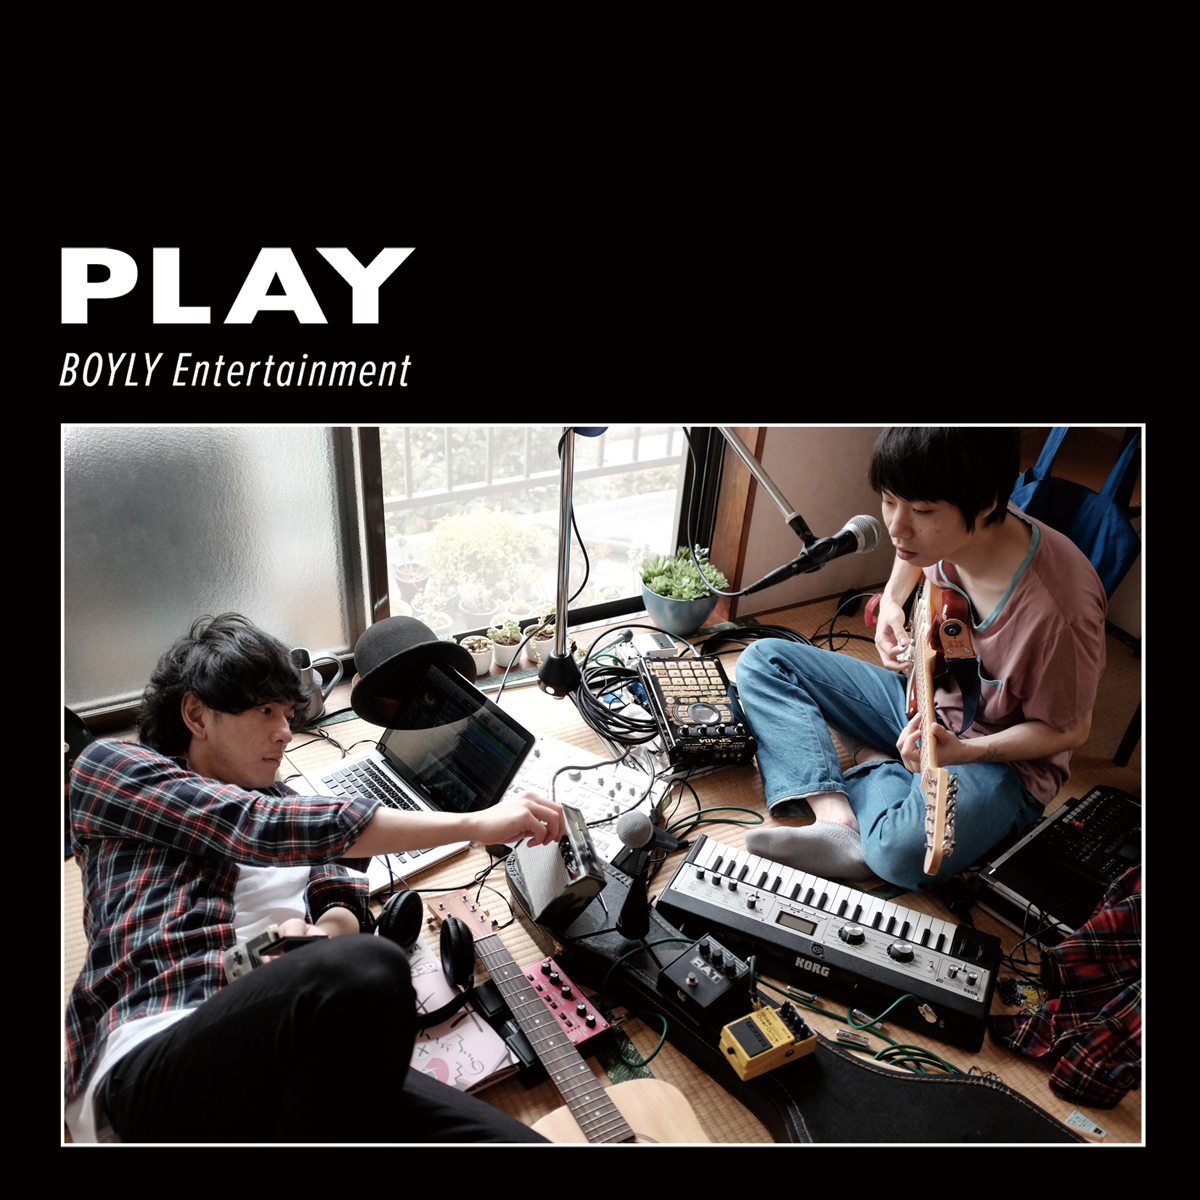 BOYLY Entertainment/PLAY